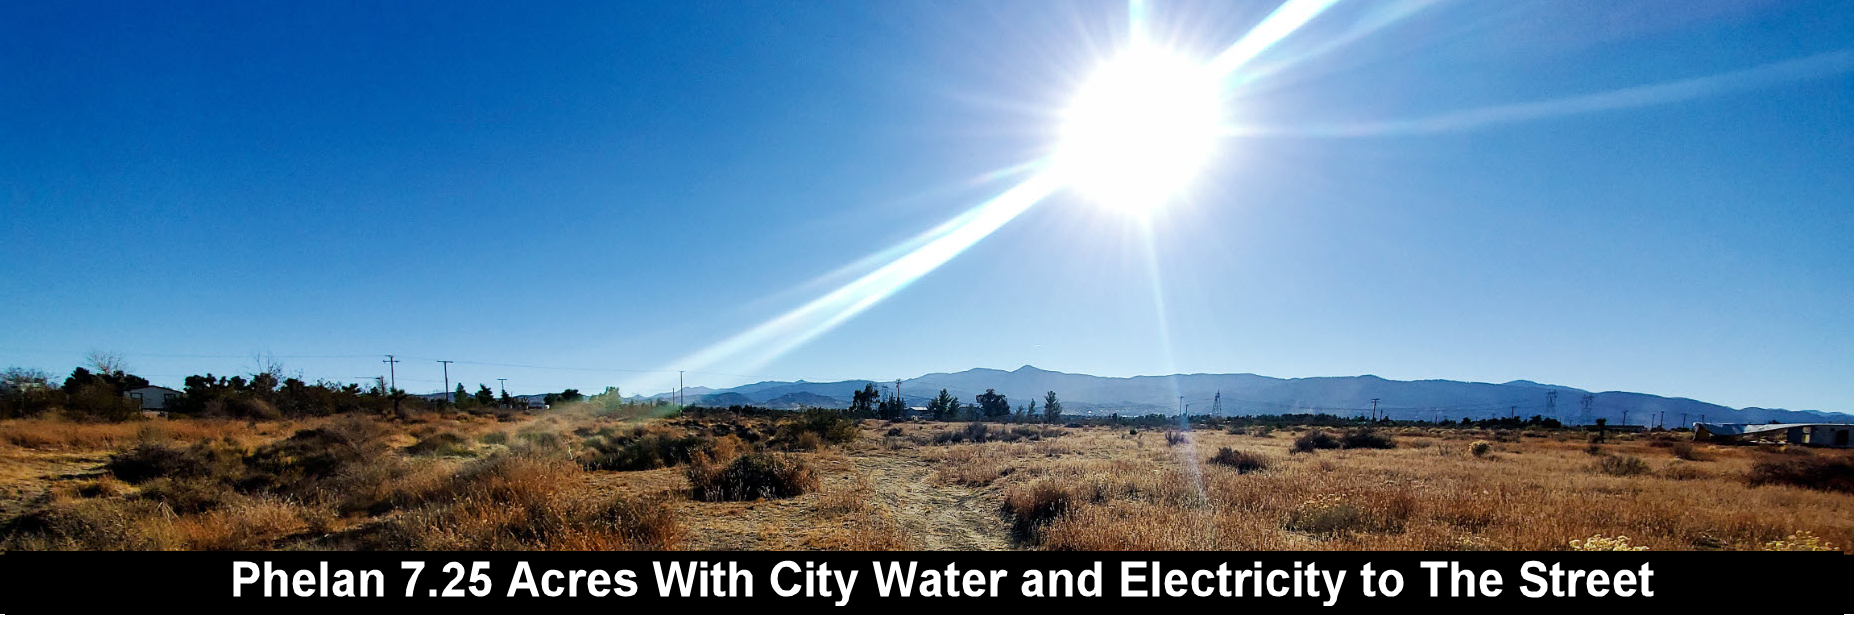 7.25 Acres Vacant Land With Amazing Views and City Electric and Water On the Street